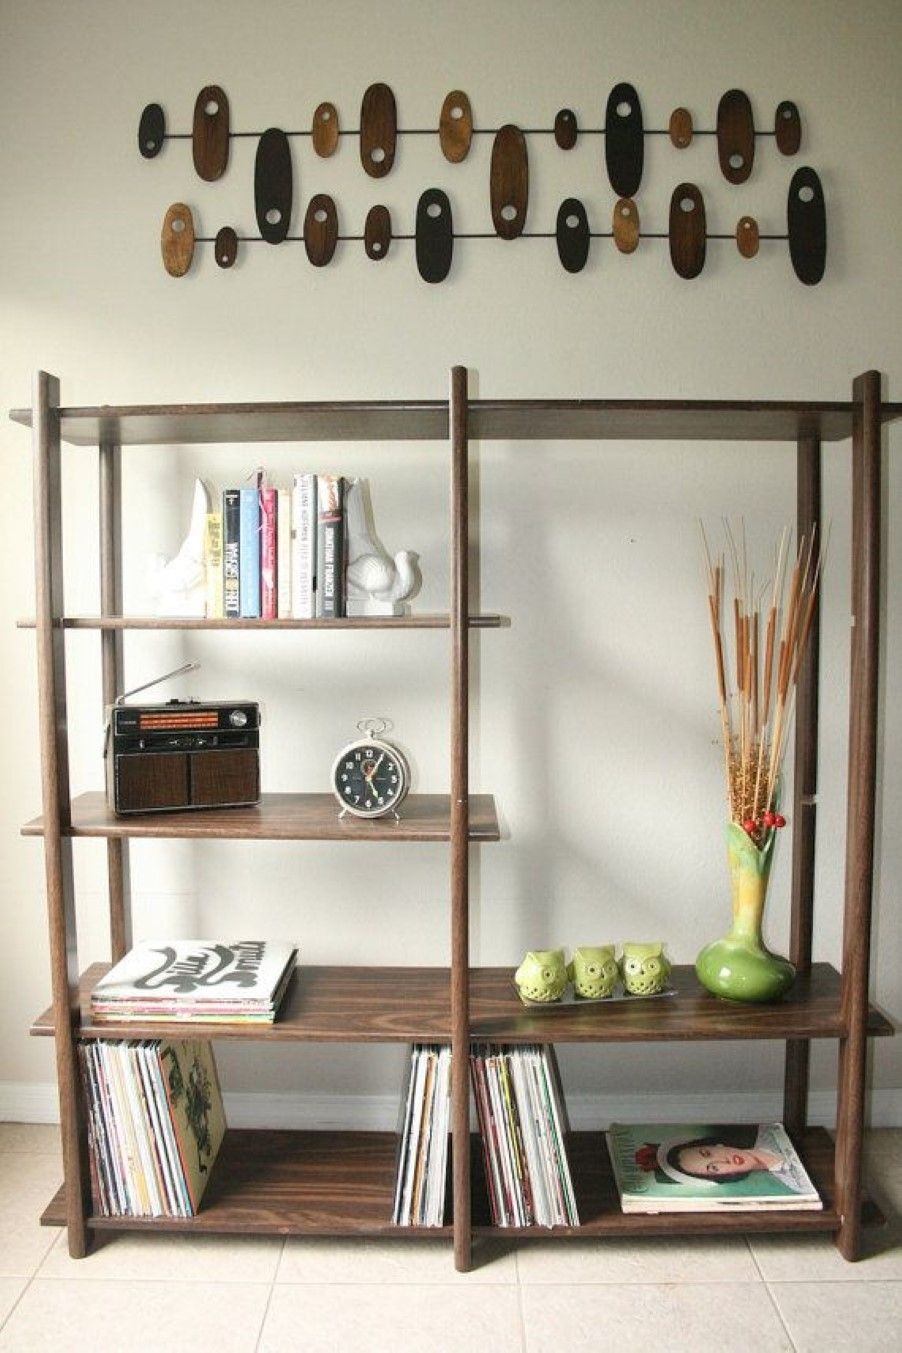 Stunning modern bookshelves with some archaically midcentury lines